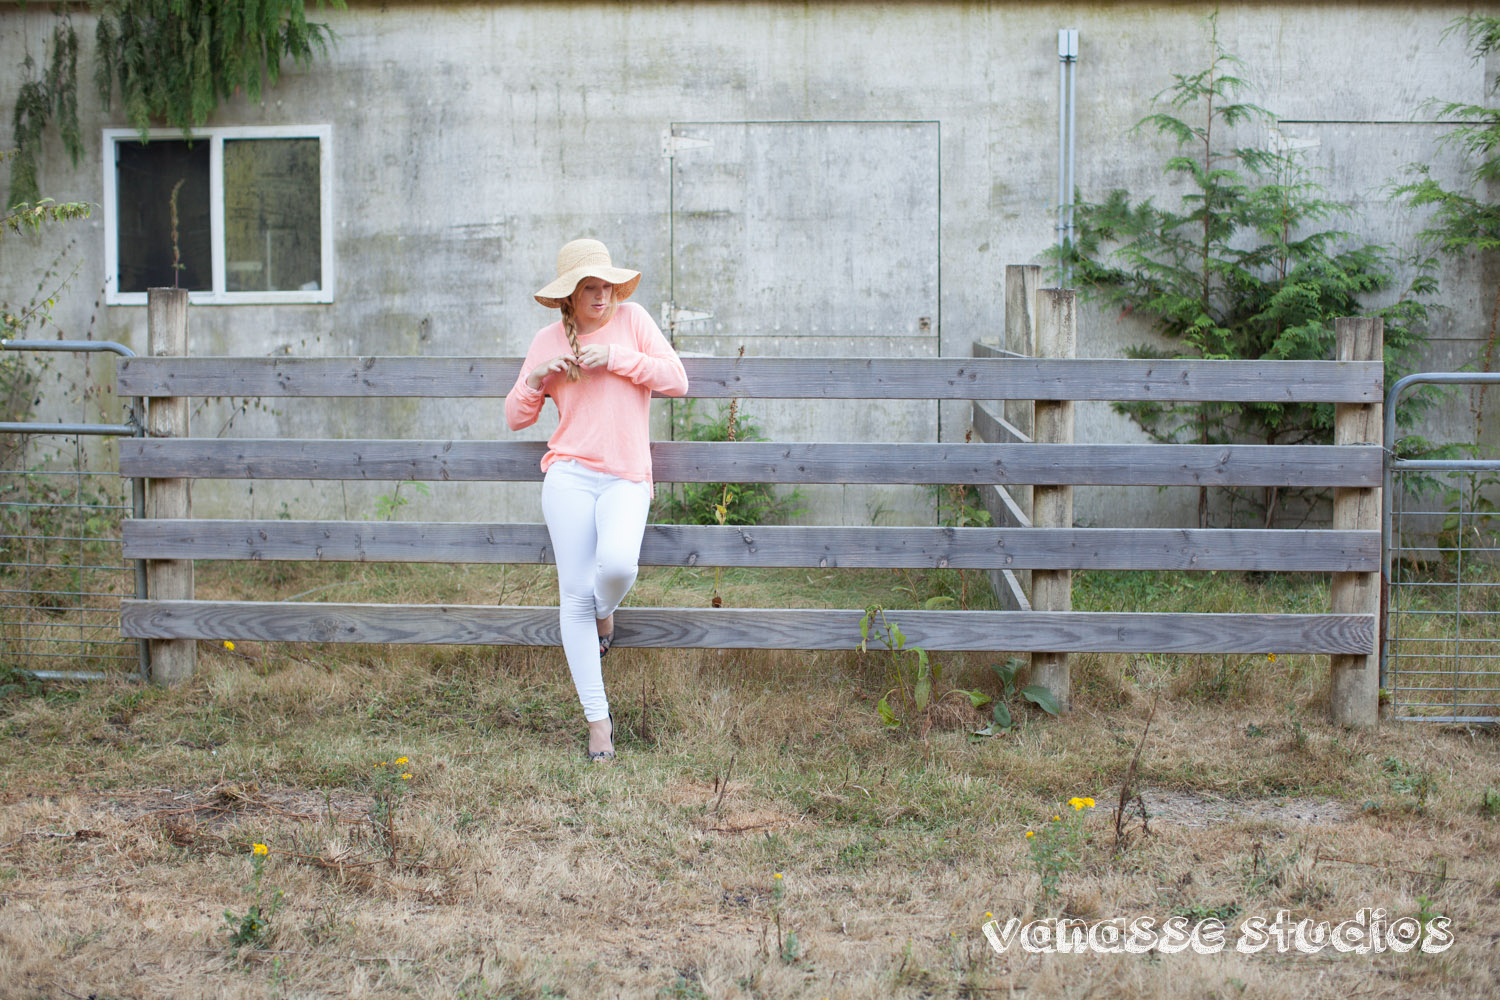 Bainbridge-Island-Senior-Photography-Riley-McCormick_017.jpg